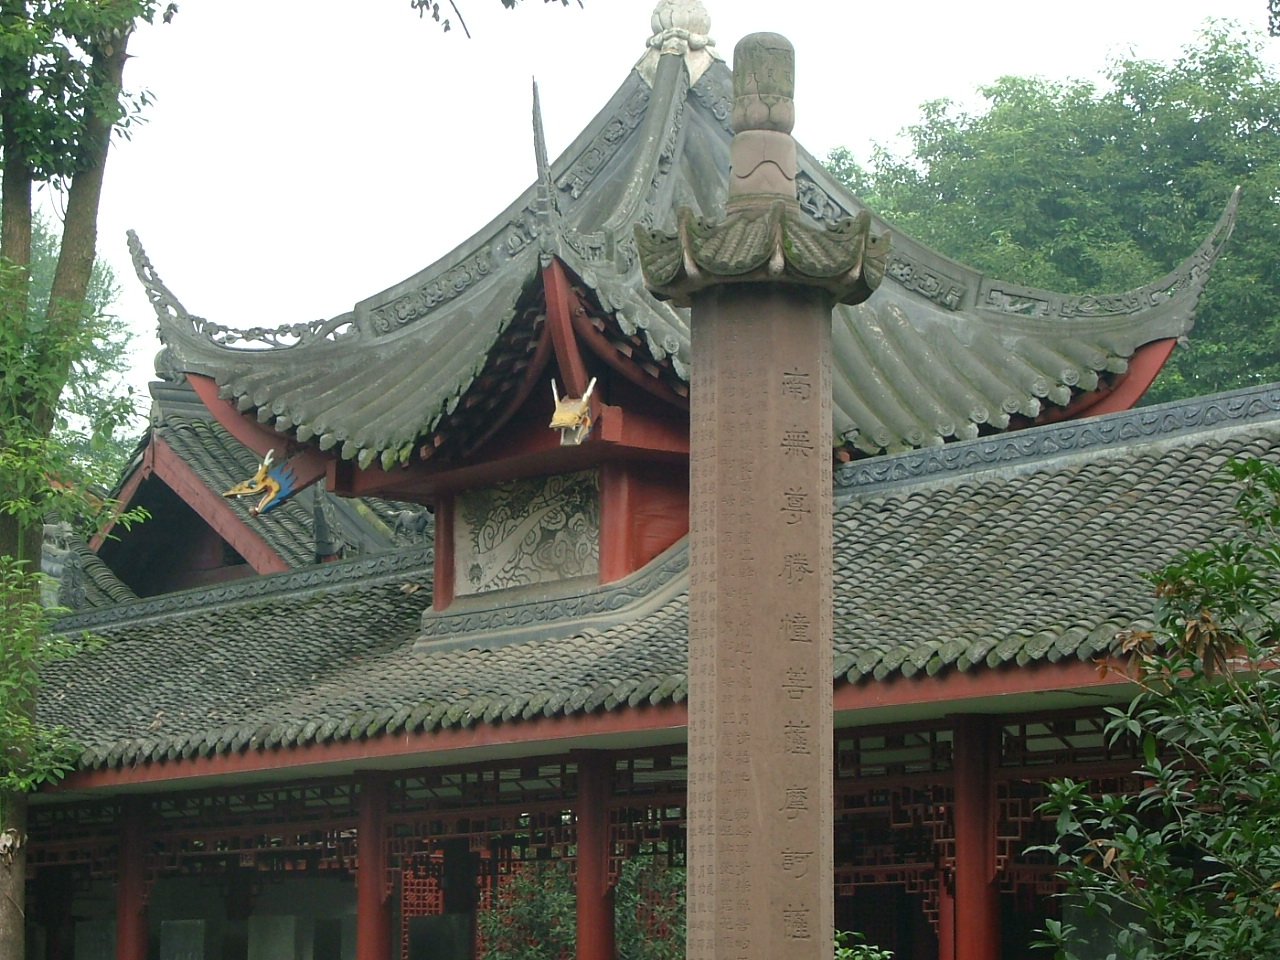 Another classy Wenshu roof